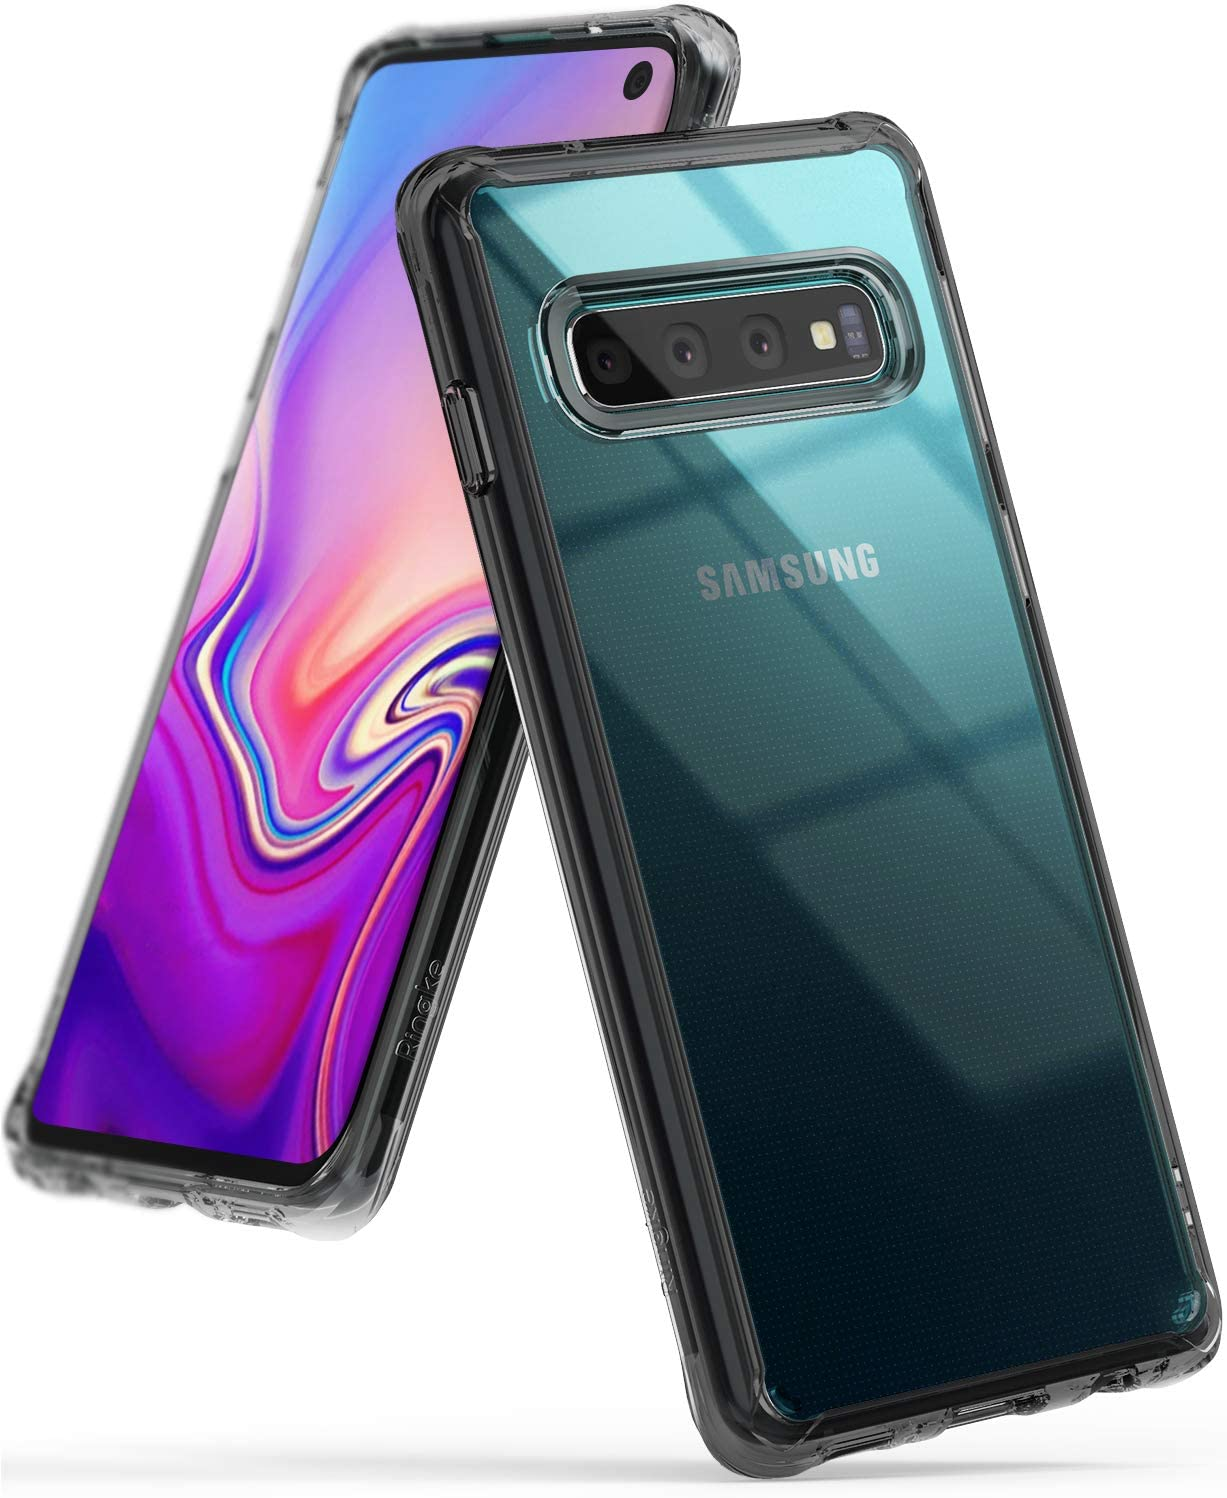 """Ringke Fusion Designed for Galaxy S10 (6.1"""") Crystal Clear PC Back Case Anti-Cling Dot Matrix Technology Lightweight Transparent TPU Bumper Drop Protective Phone Cover for Galaxy S10 - Smoke Black"""